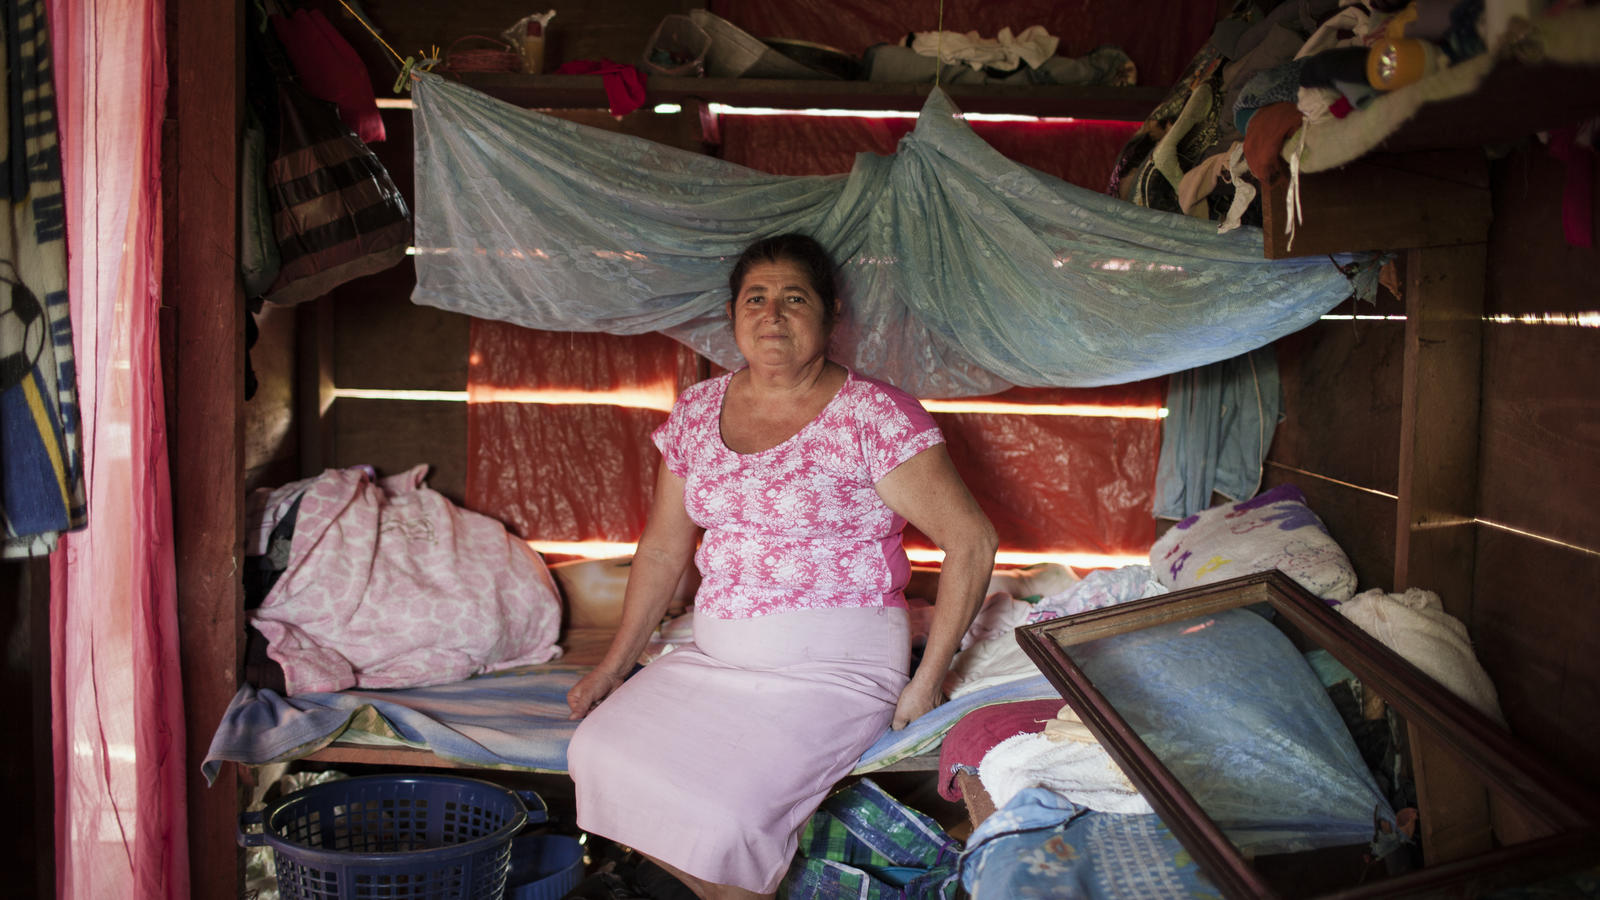 Margarita Gonzalez Castellon, 53, at her house. A midwife for 25 years claims to have delivered over 100 babies. Columbus, Butku, Nicaragua, 2015.